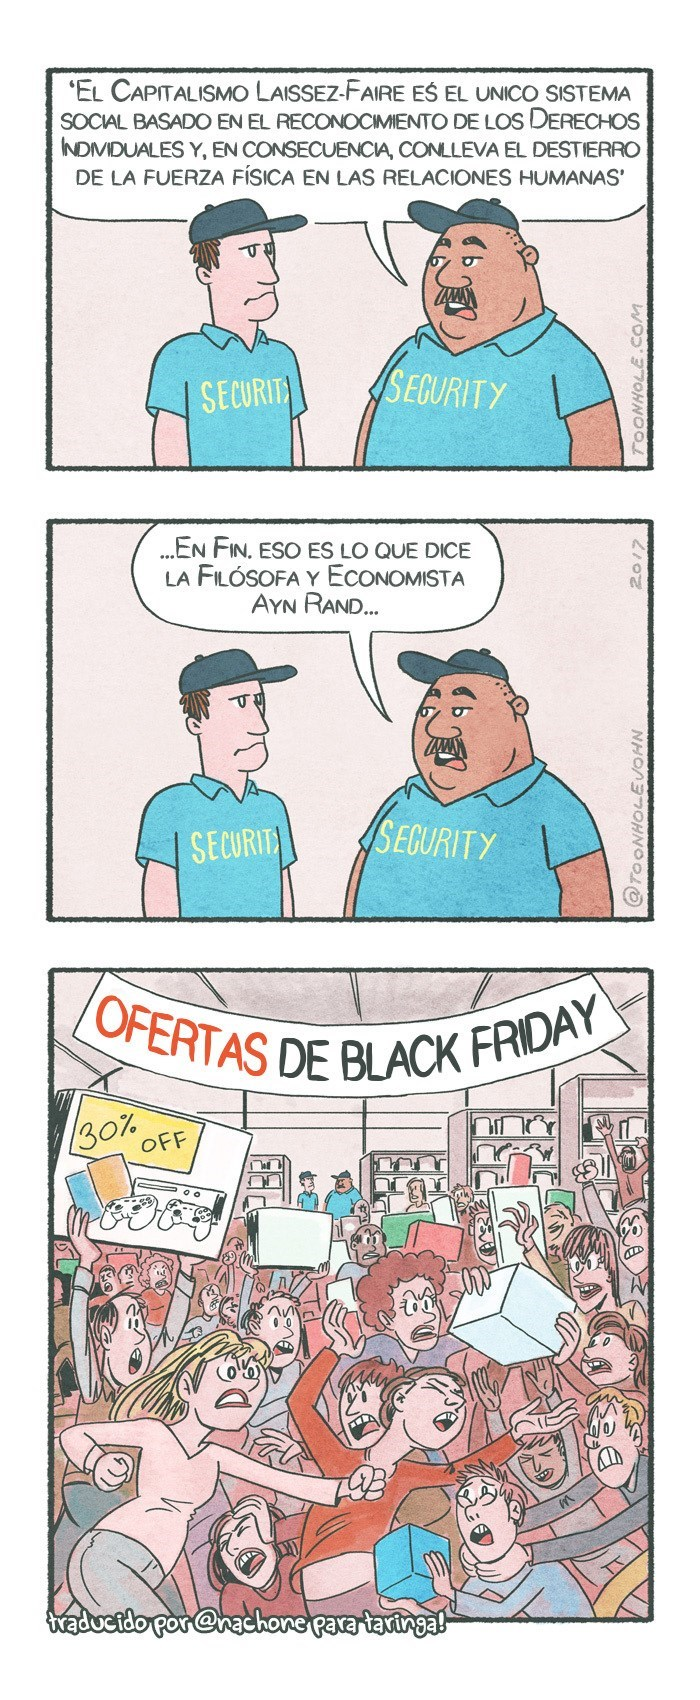 vineta sobre la filosofia y etica en black friday